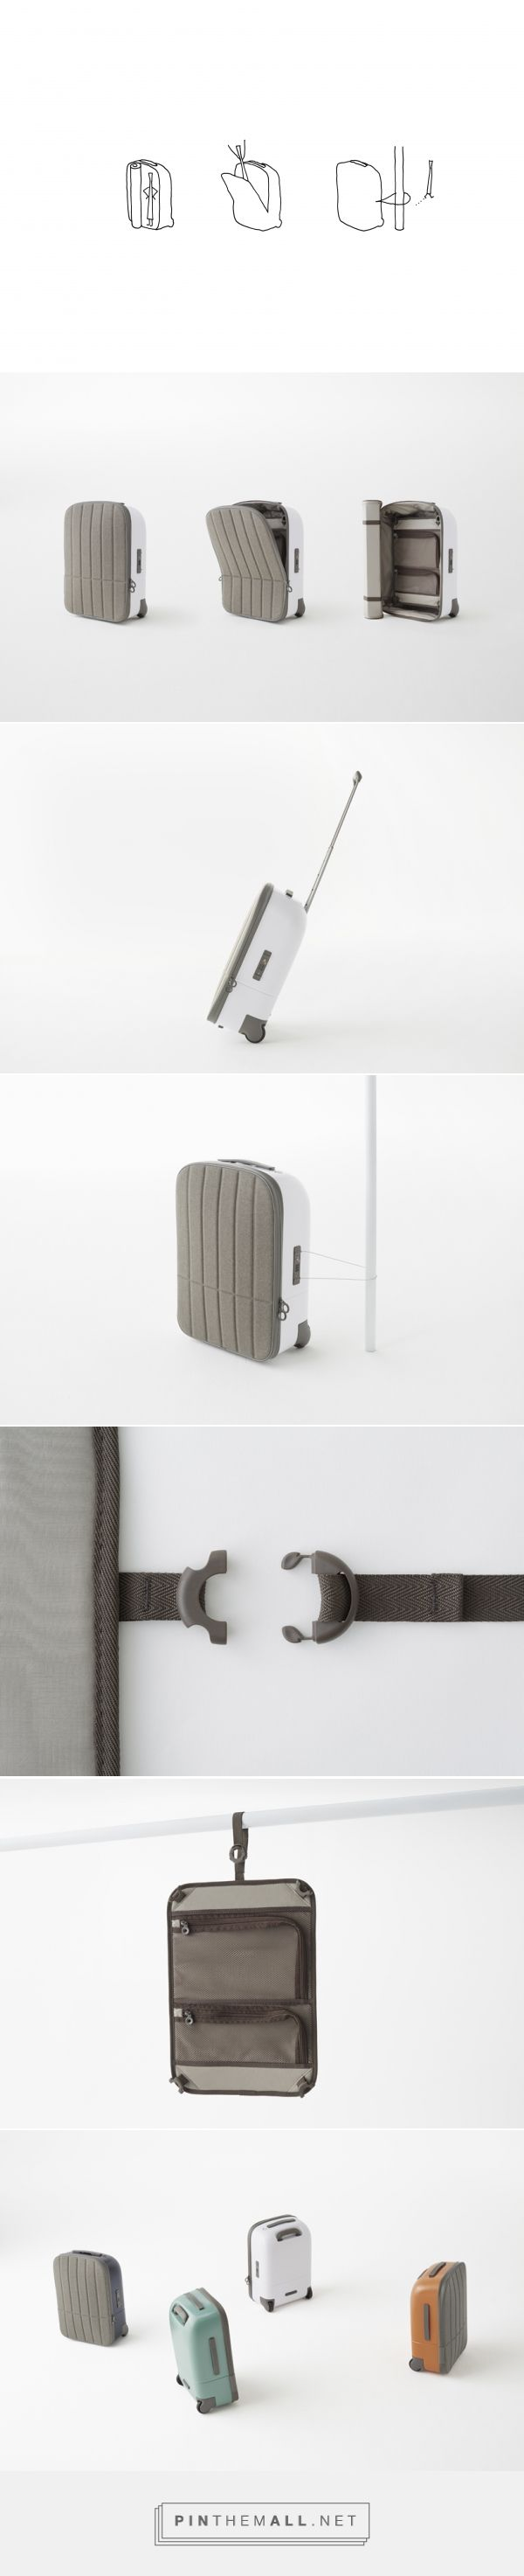 10 x 8 küchenideen  best product images on pinterest  furniture ideas projects and diy